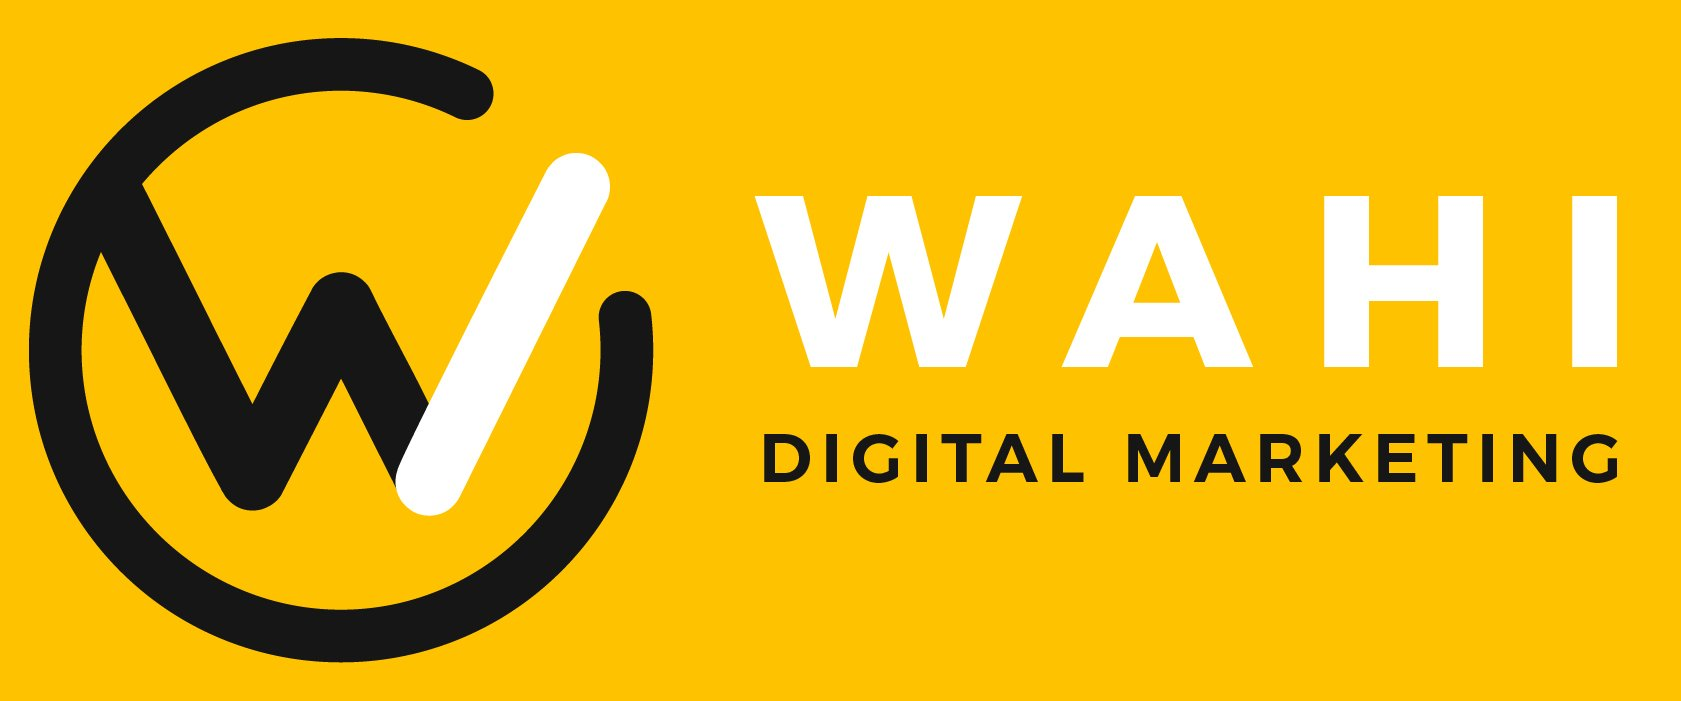 wahi digital marketing logo with yellow background